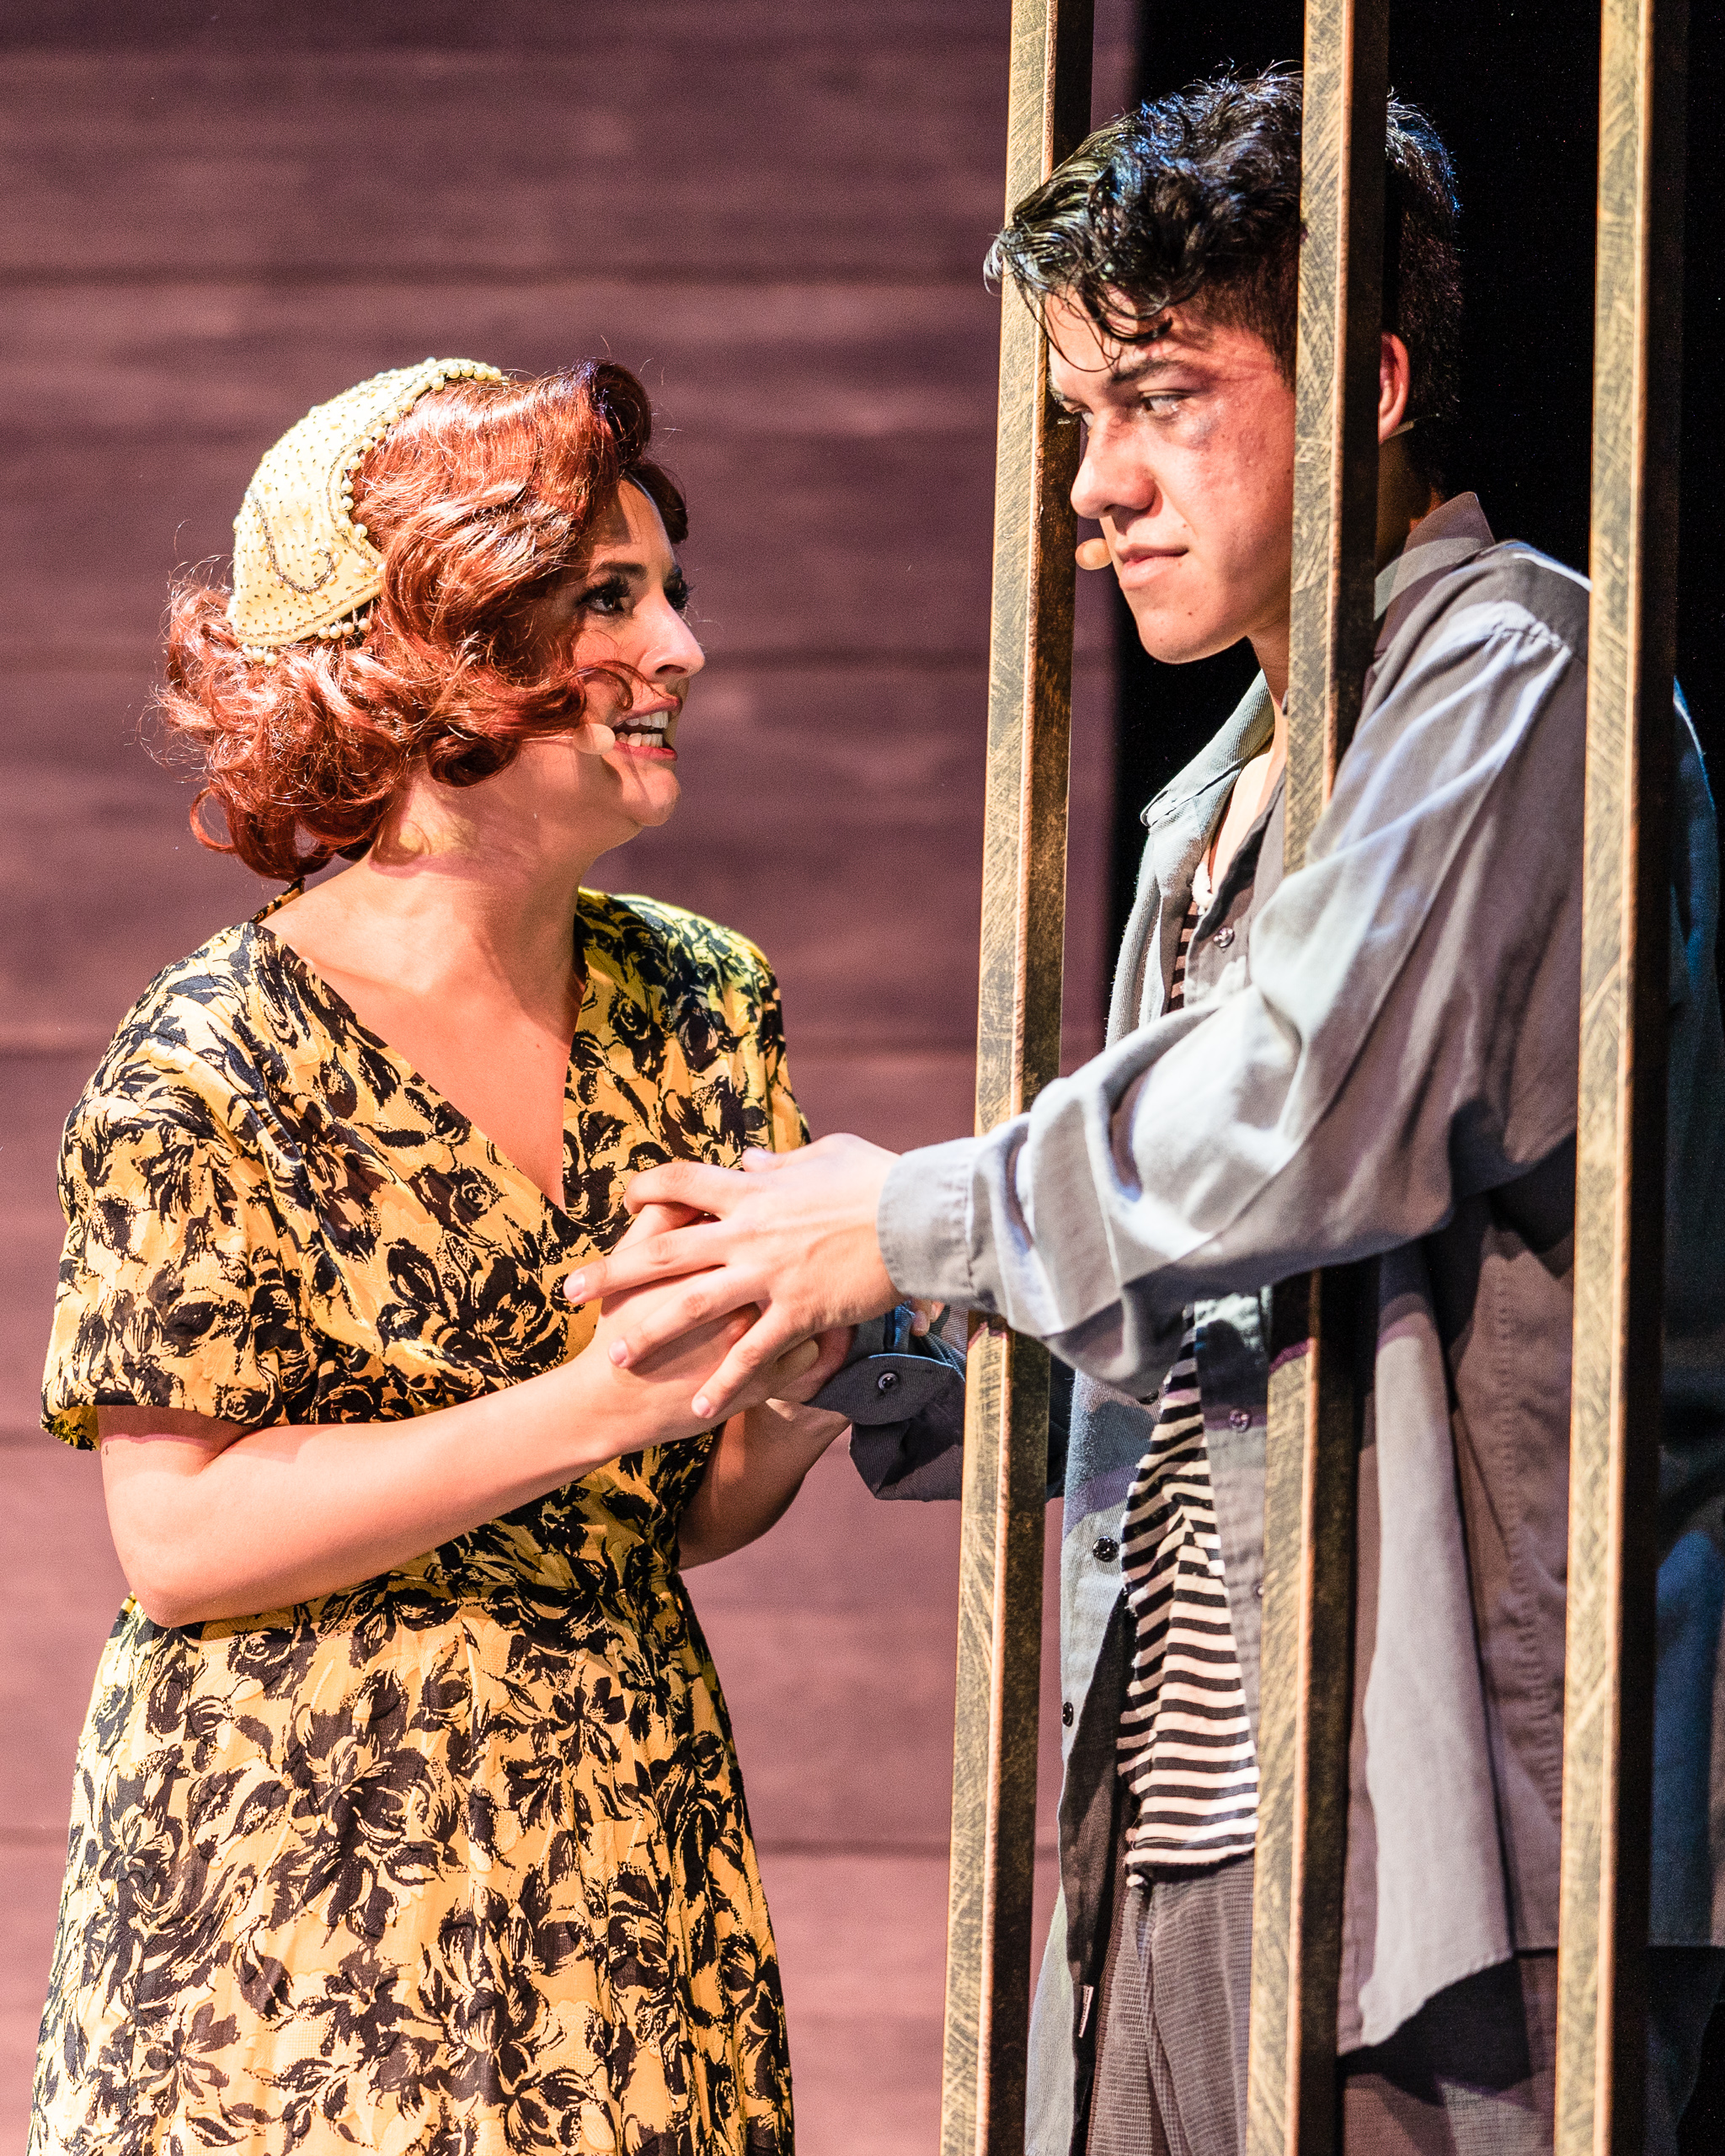 Val Castano (Bonnie Parker) a communications and music major from Miami, FL visits a beaten Joseph Martinez (Clyde Barrow) a theatre major from Lancaster, CA, in prison during the dress rehearsal for the SMC production of Bonnie and Clyde on the SMC Main Stage on Tuesday, May 21, 2019. (Glenn Zucman/The Corsair)